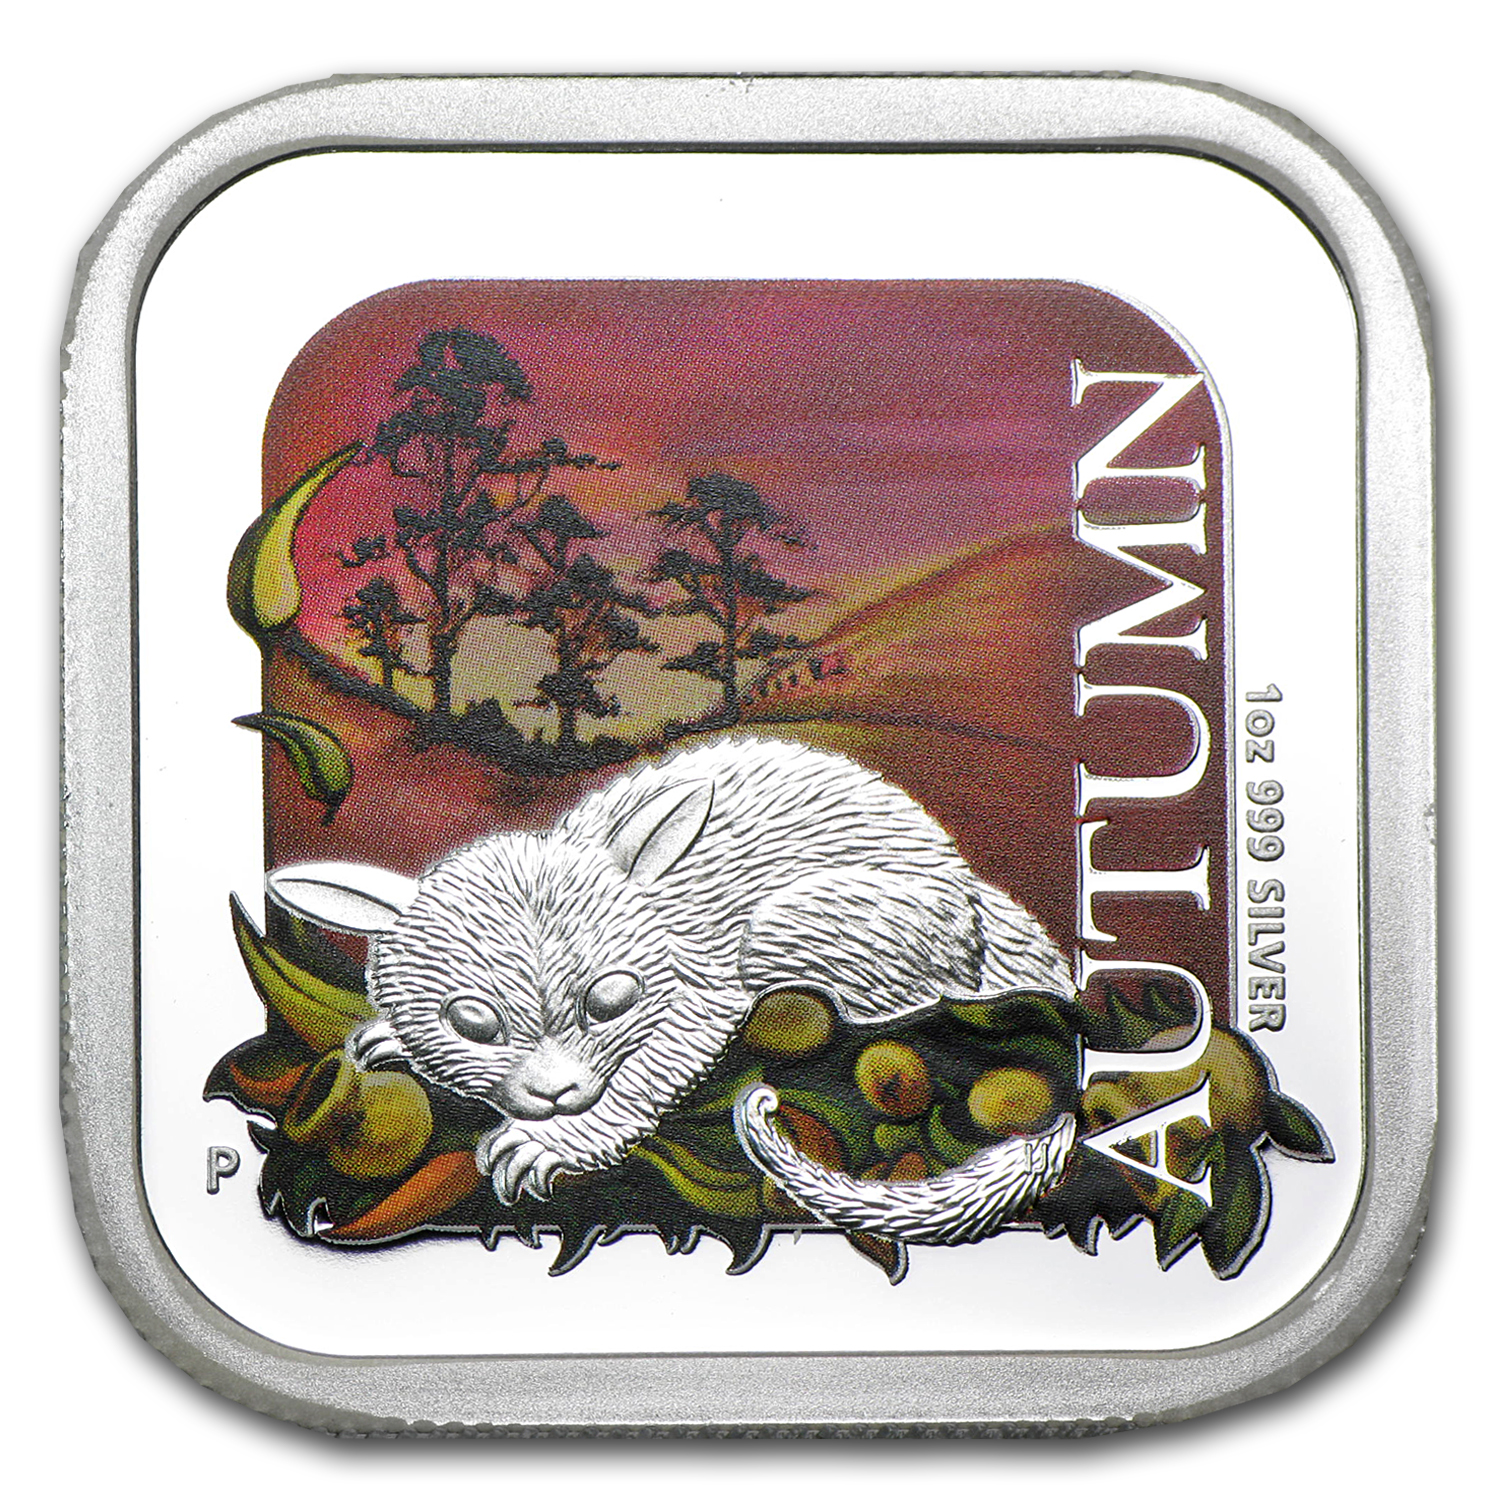 2013 Australia 1 oz Silver Seasons Autumn Proof